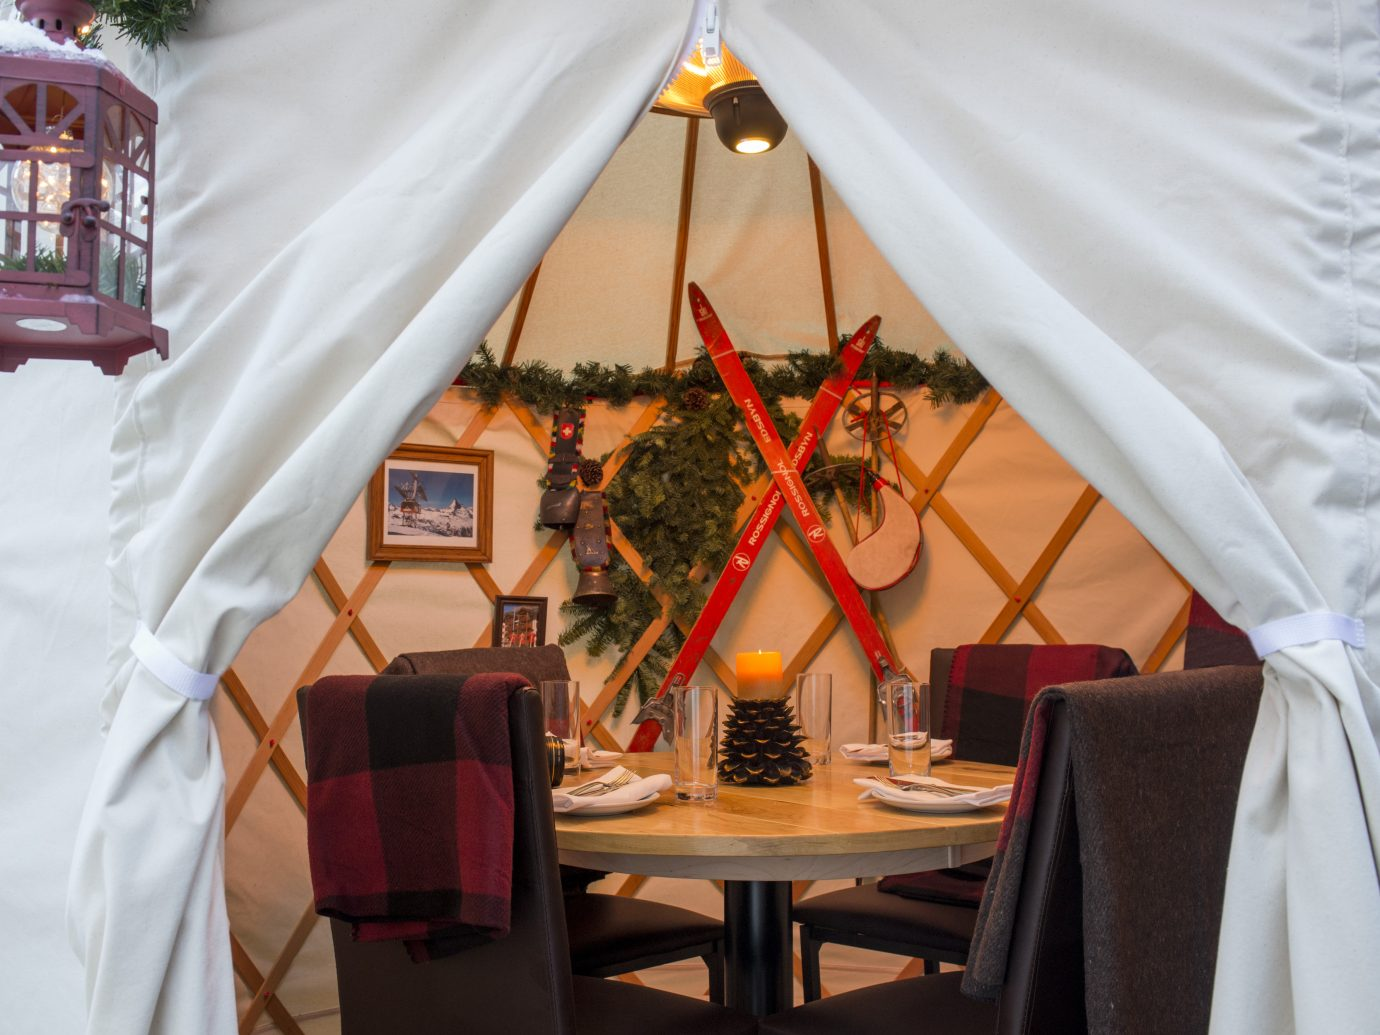 interior of a tent with a table in it